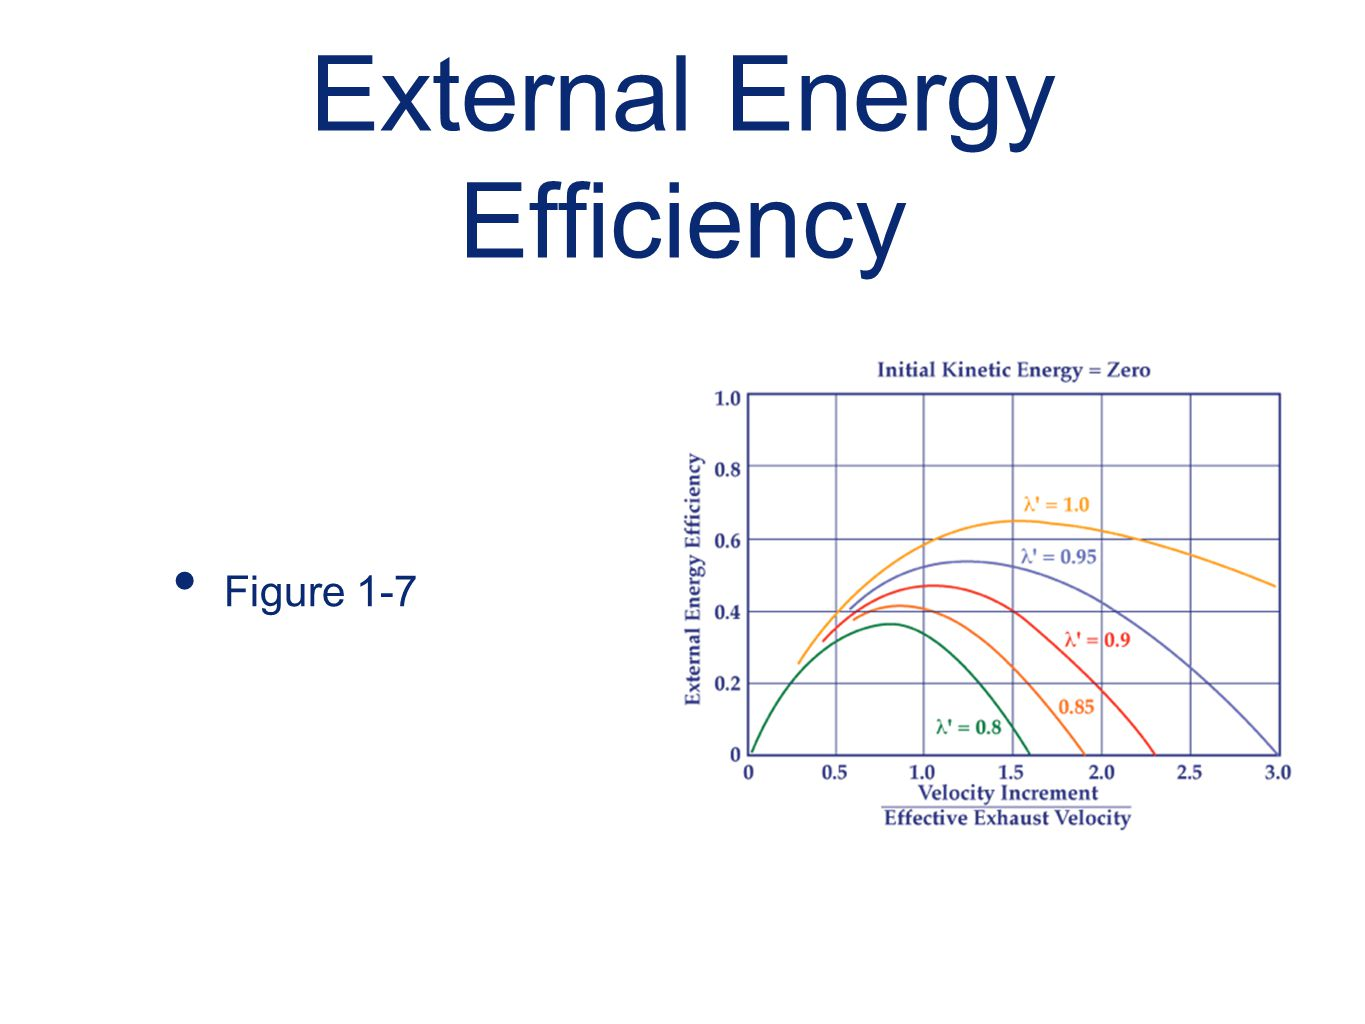 External Energy Efficiency Figure 1-7